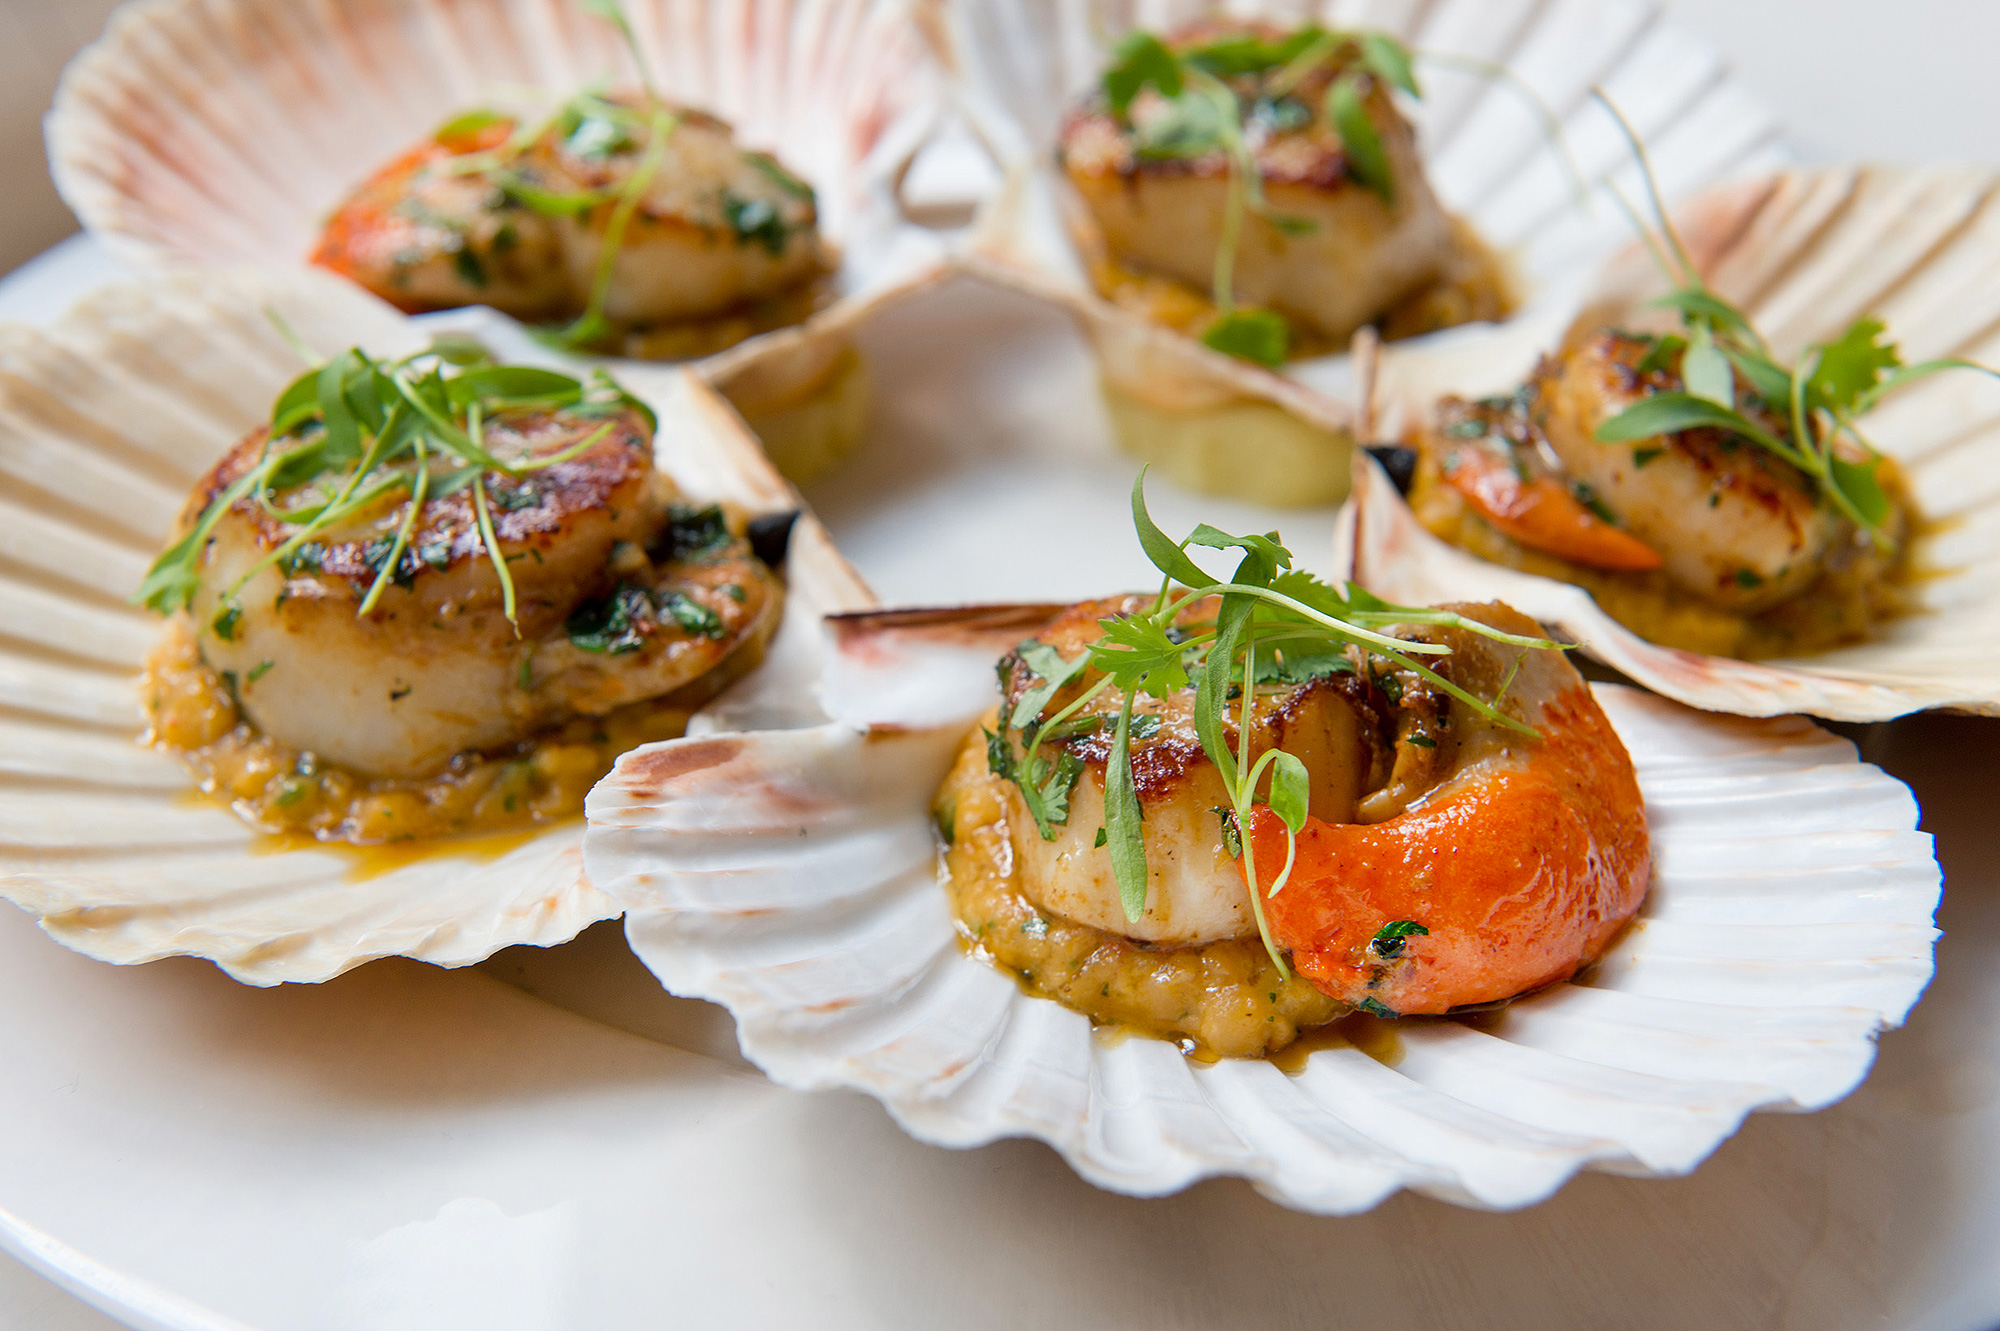 Seared Isle of Skye scallops with spiced lentils and coriander at 108 Brasserie